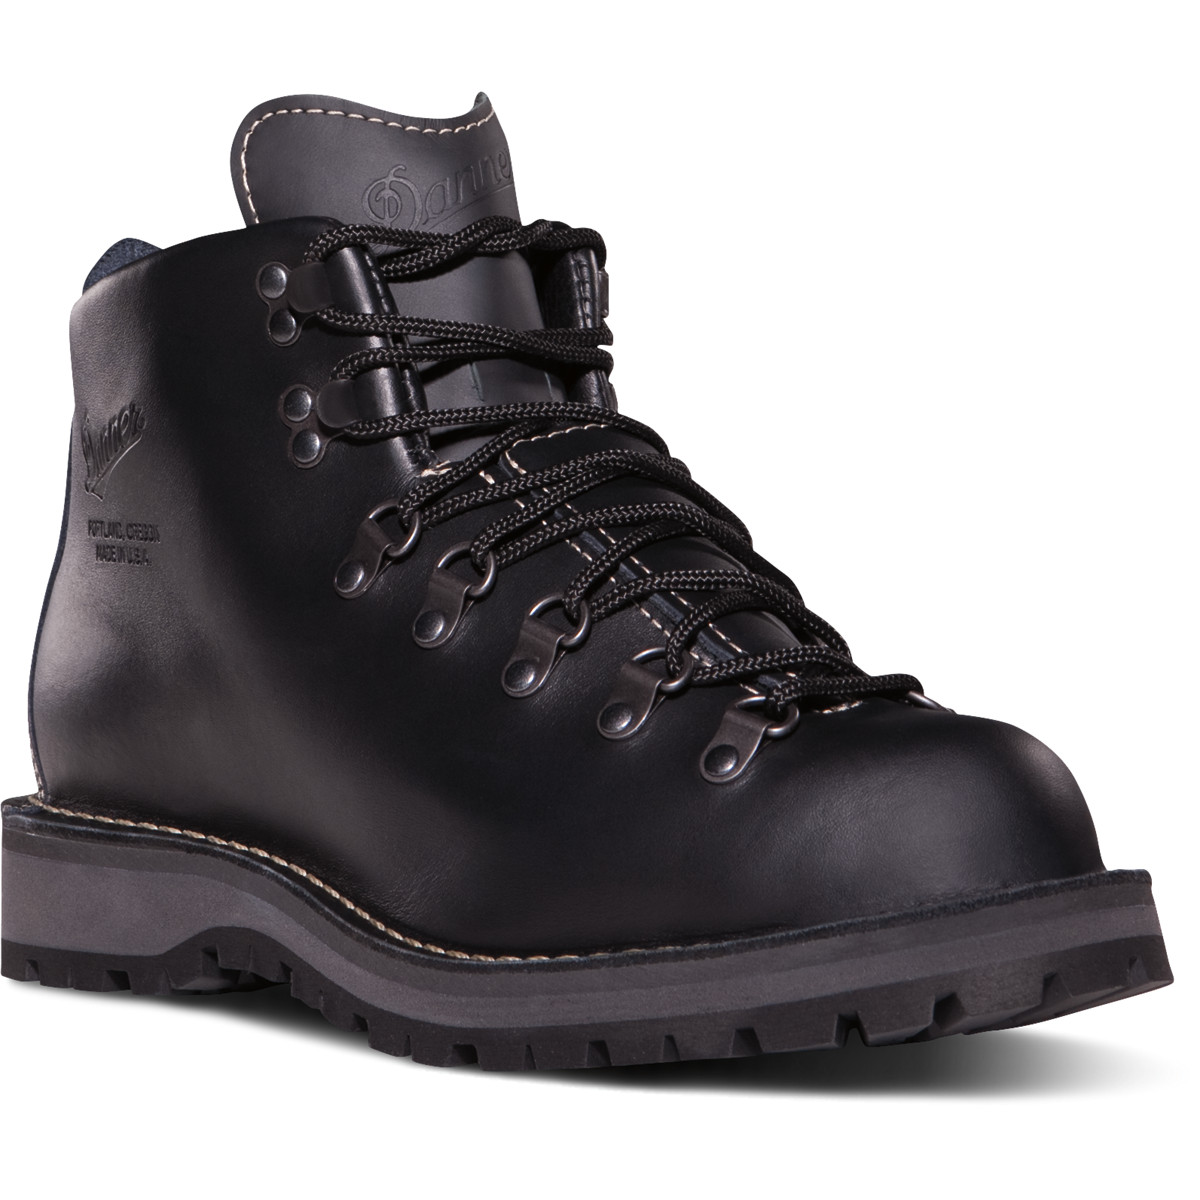 Danner Work Boots | Best Selection & Lowest Prices